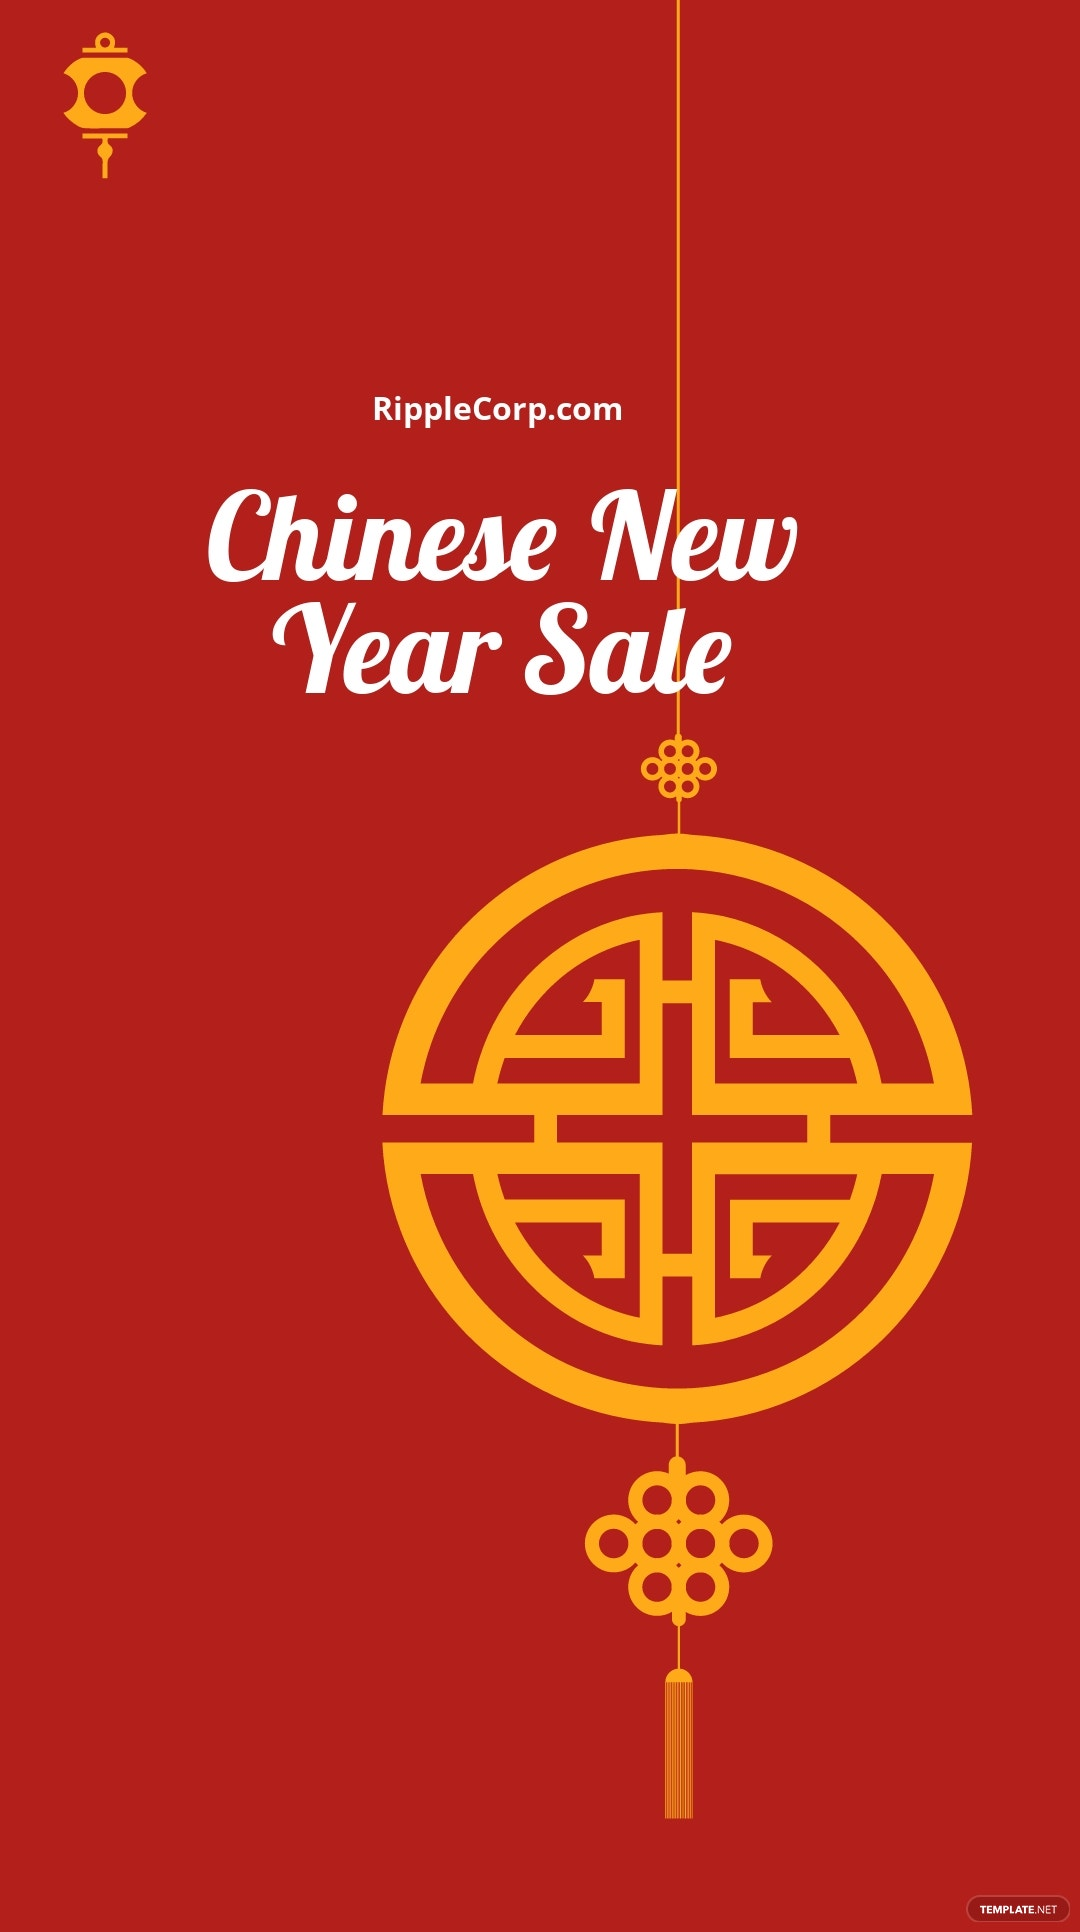 Chinese New Year Sale Instagram Story Template 1.jpe